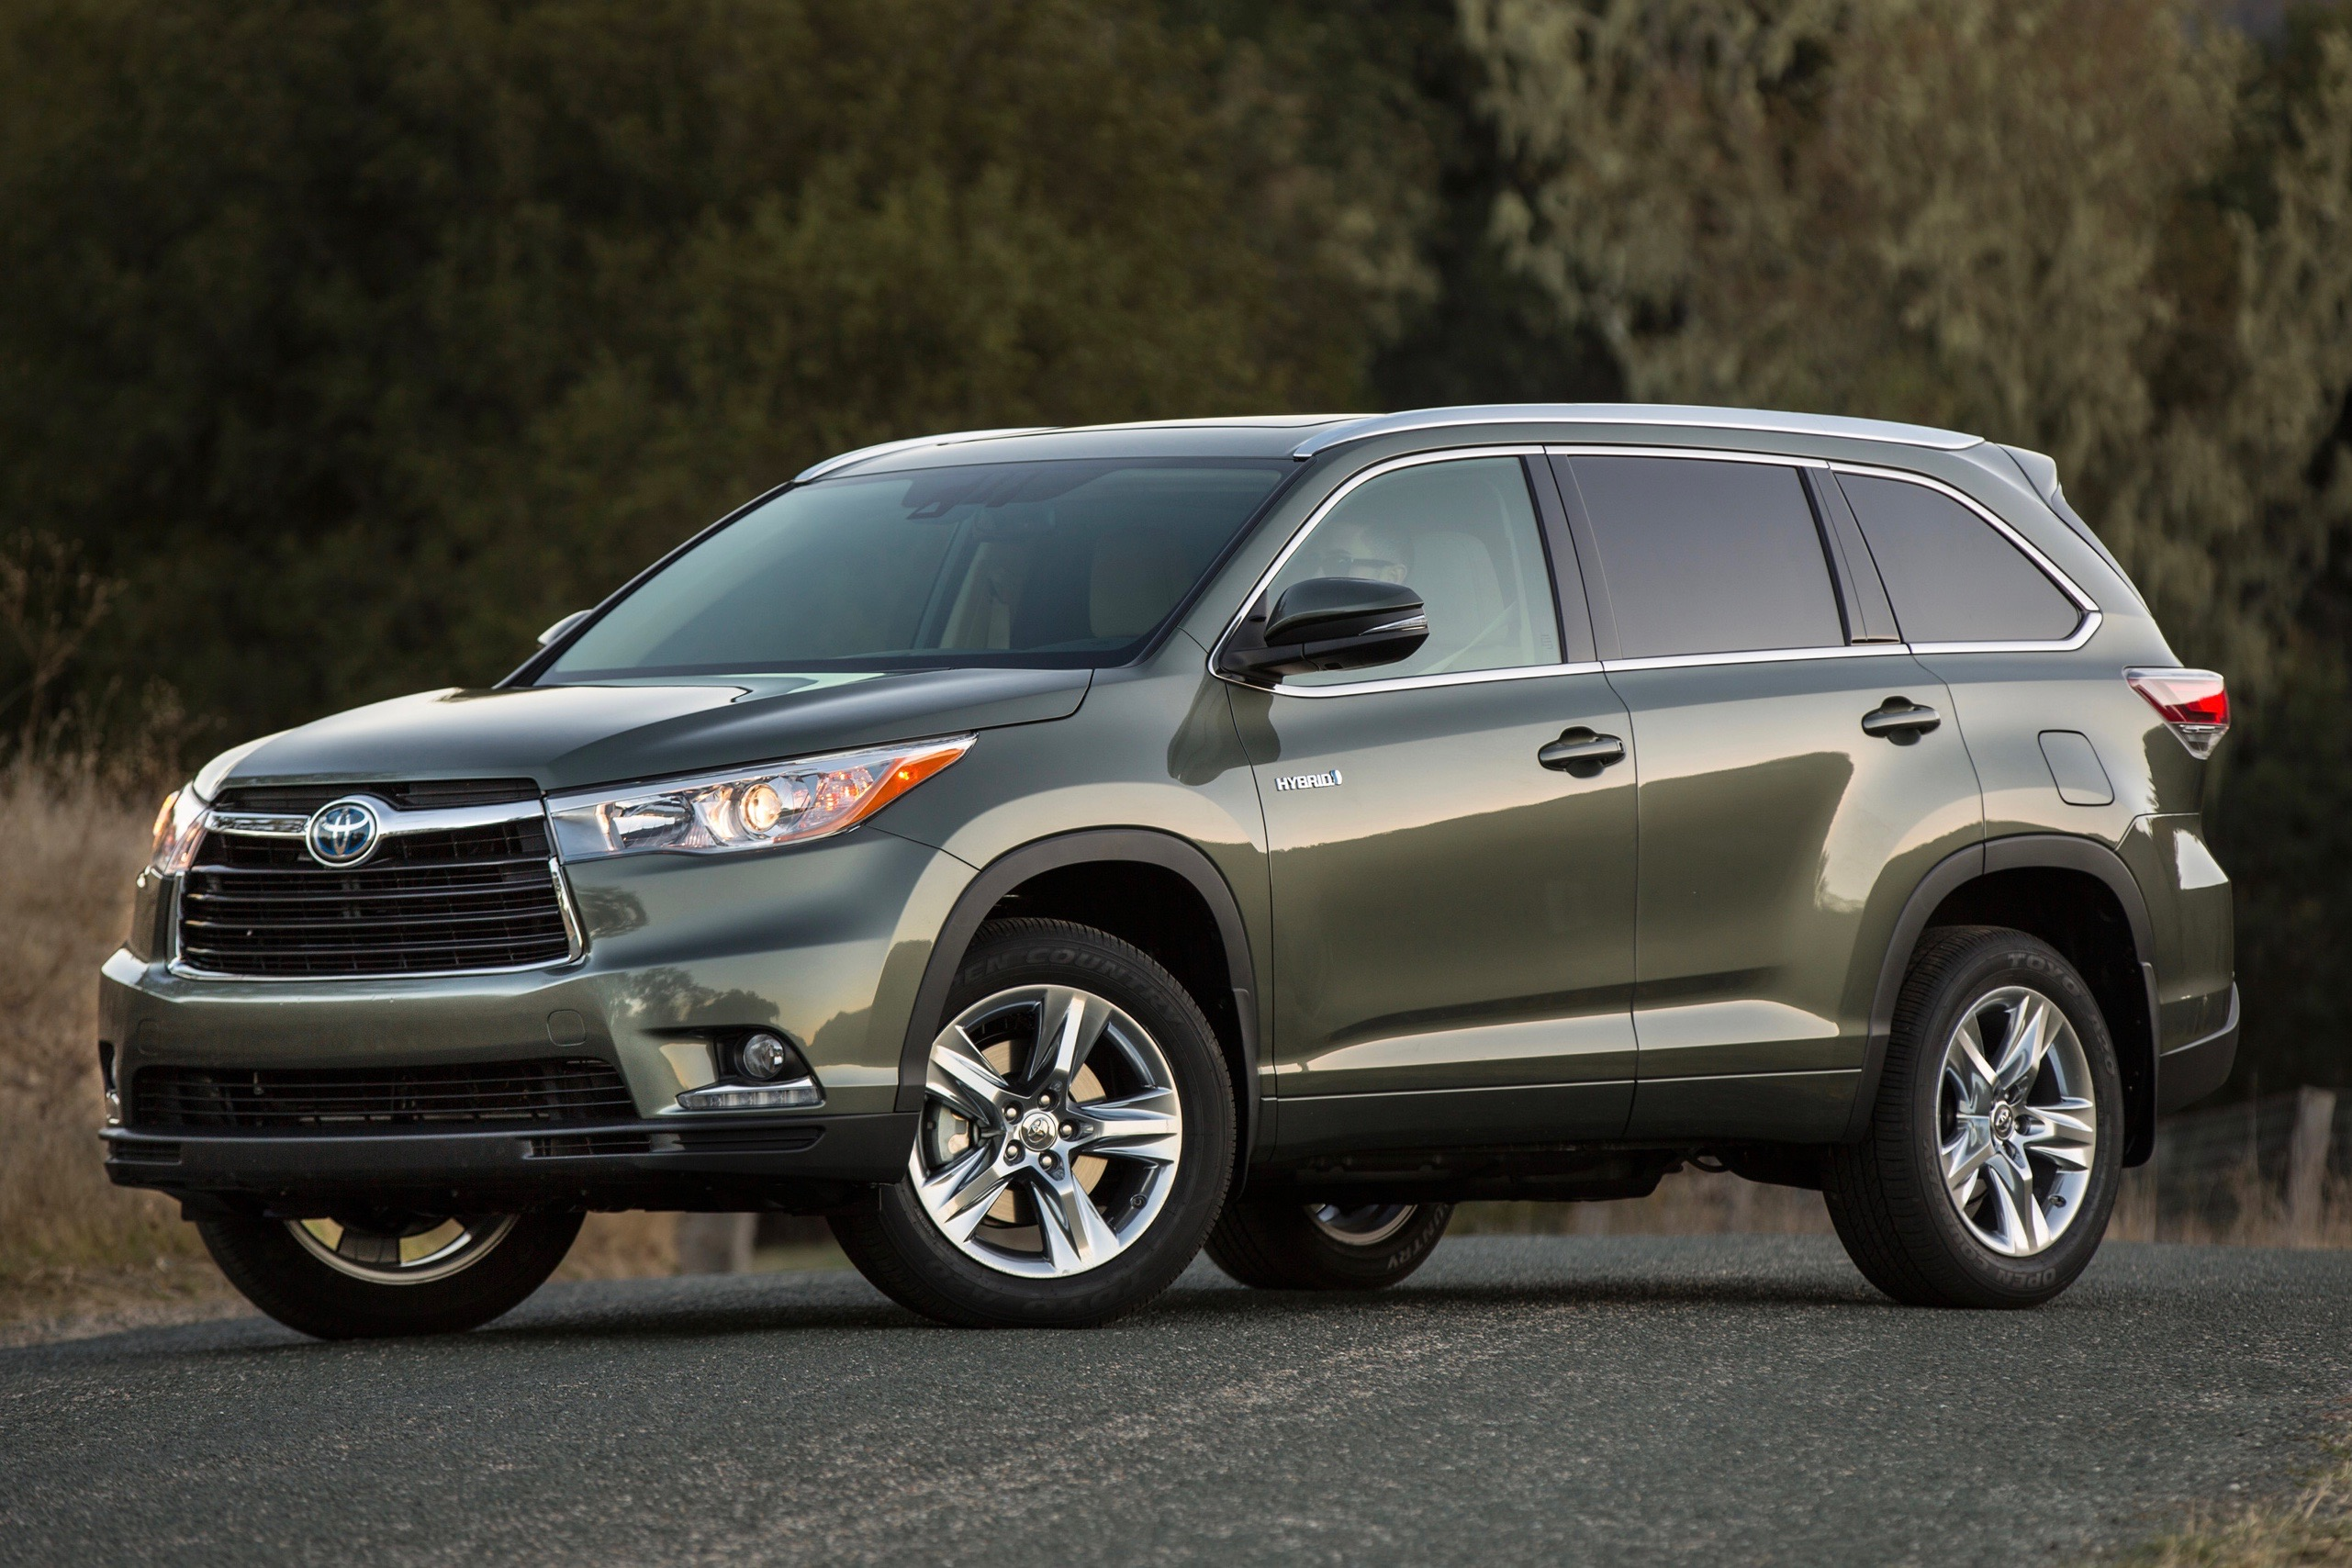 Fuel-efficient and Family-friendly Used SUVs | CARFAX Blog